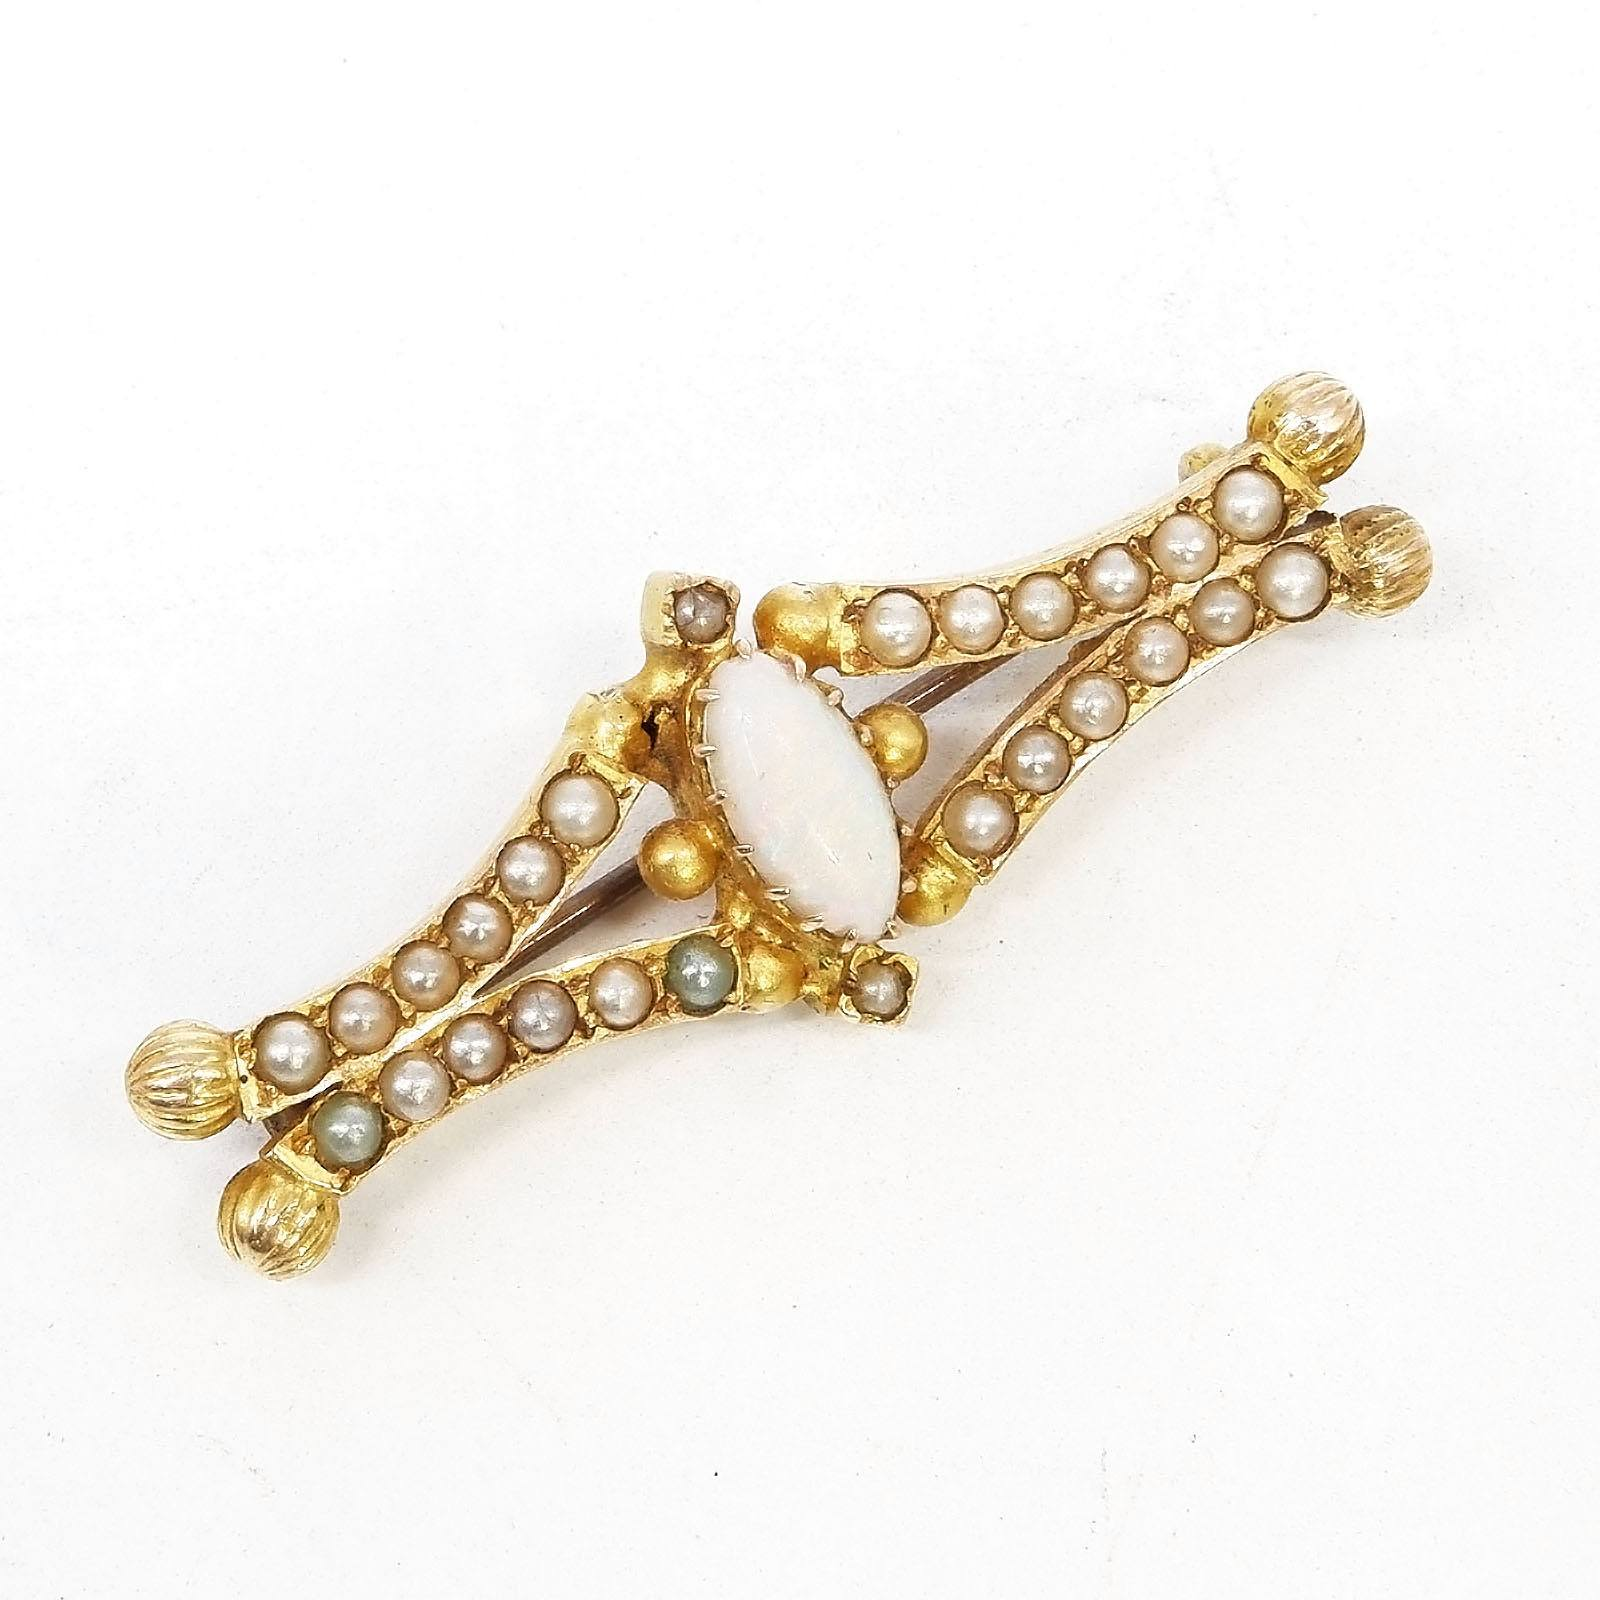 'Antique 15ct Yellow Gold Bar Brooch with at Centre Marquite Cabouchon of Solid White Opal and Paste Beads to Imitate Half Seed Pearls, 5.3g'